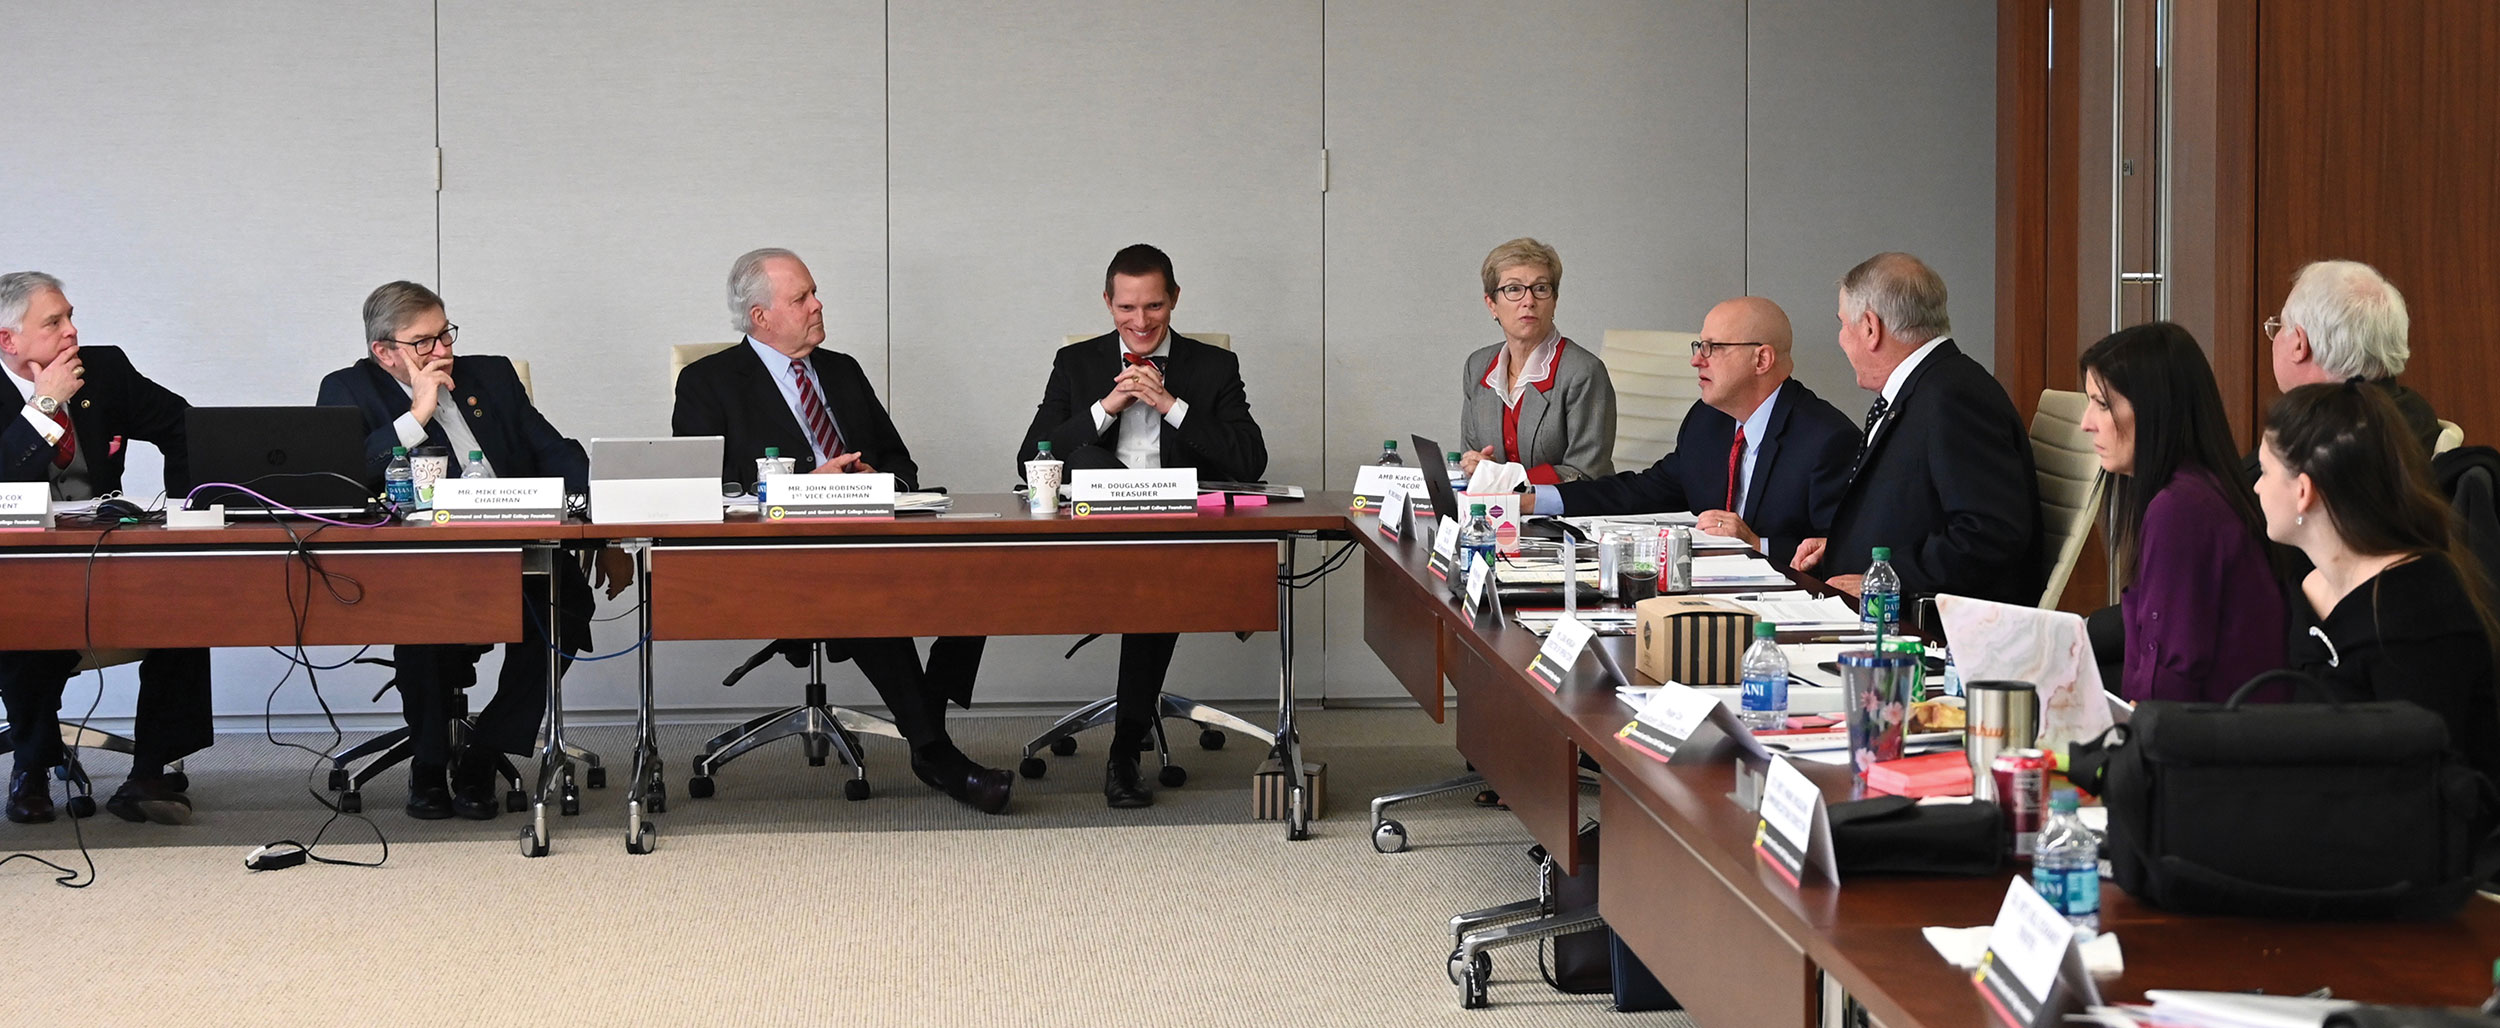 Ambassador Canavan visits with the members of the CGSC Foundation board of trustees during their quarterly meeting Dec. 4, 2019.